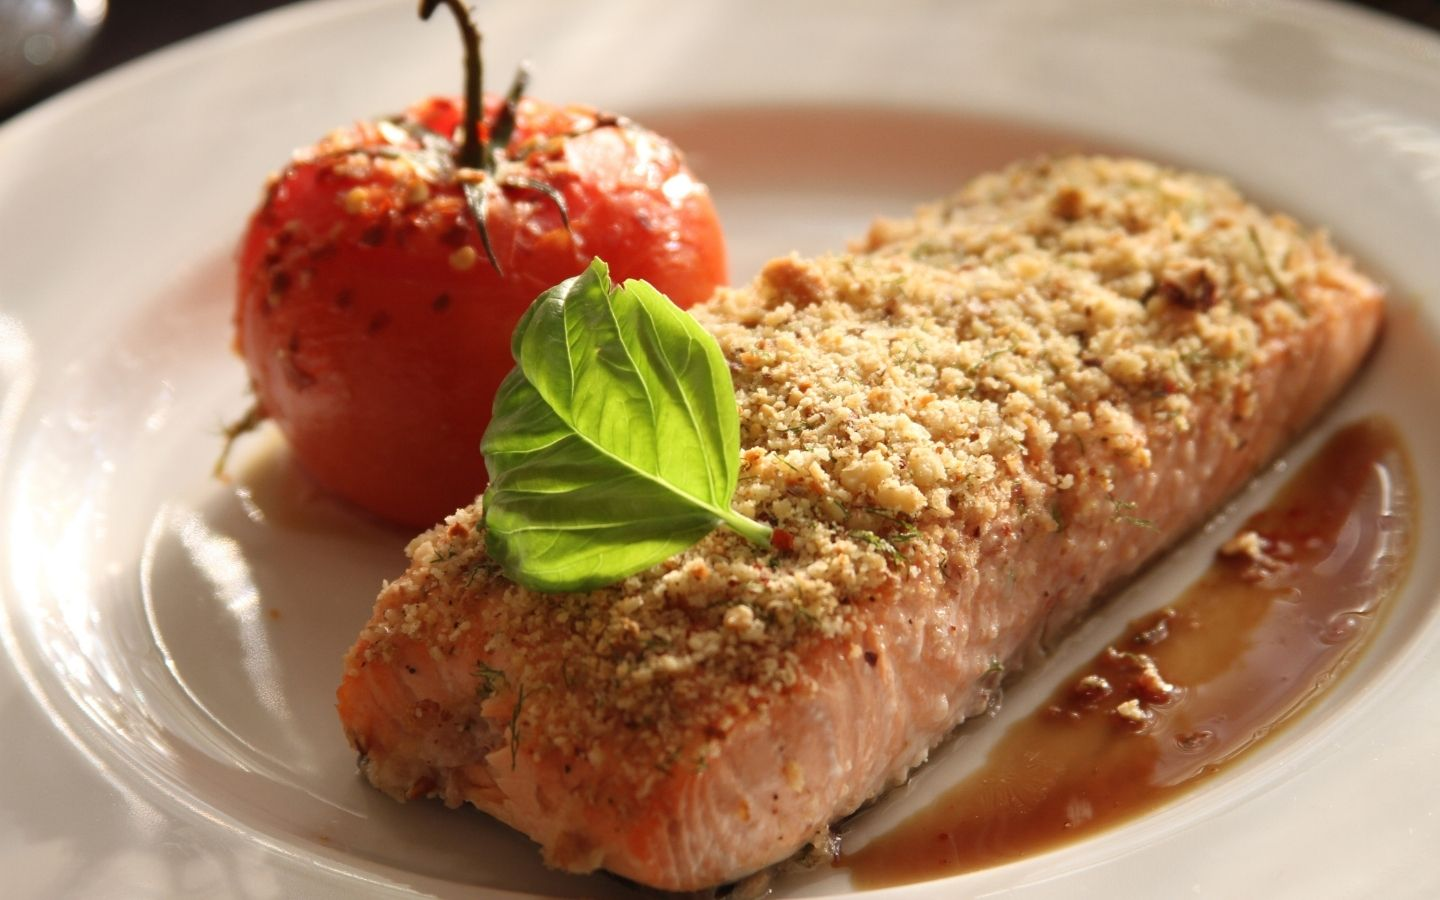 Plate of baked salmon with crispy topping crust and drizzled honey